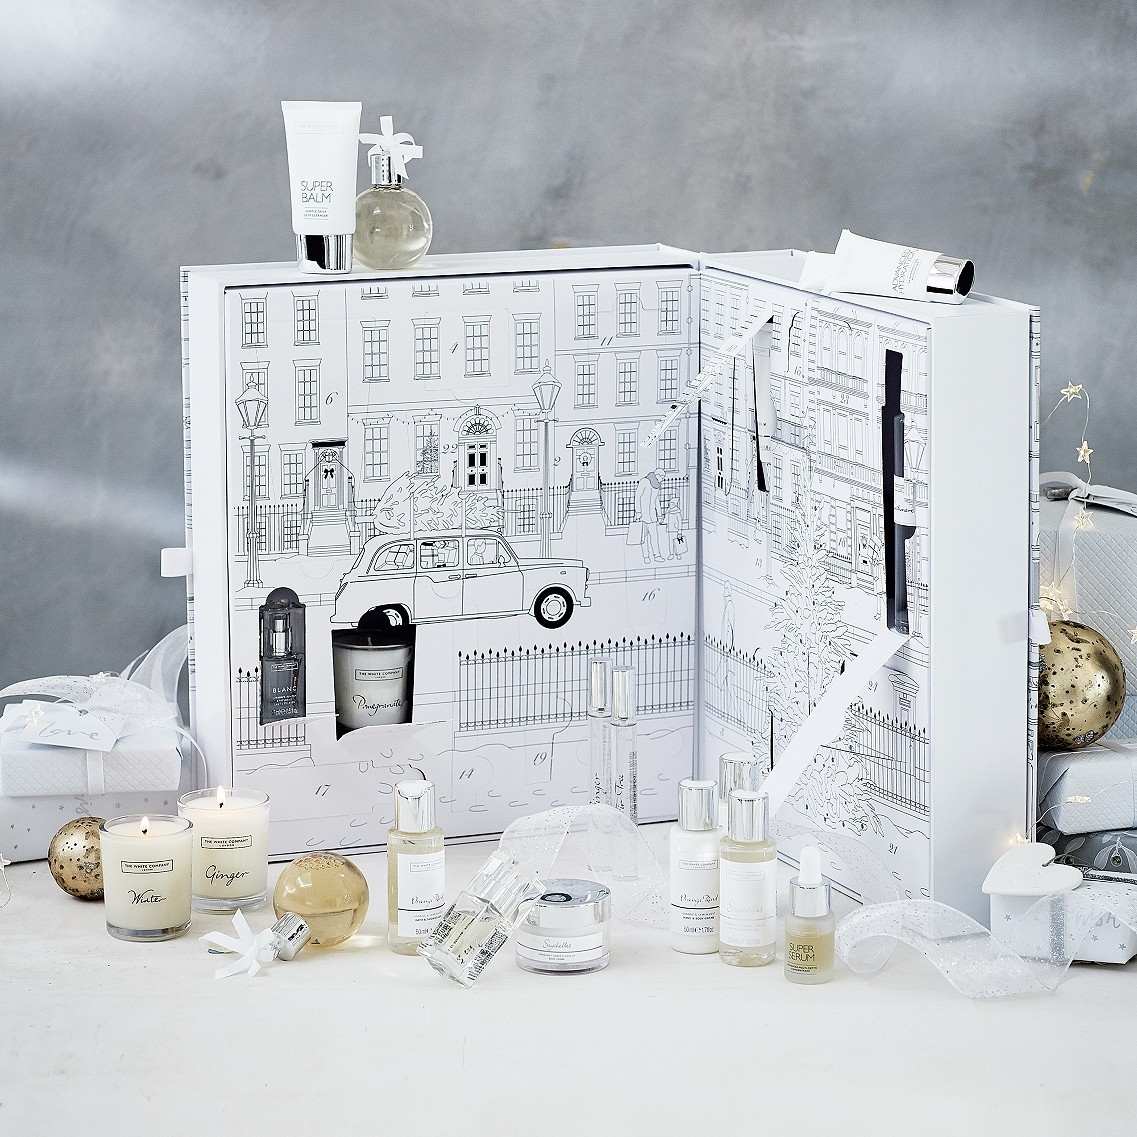 Countdown to Christmas with a beauty advent calendar